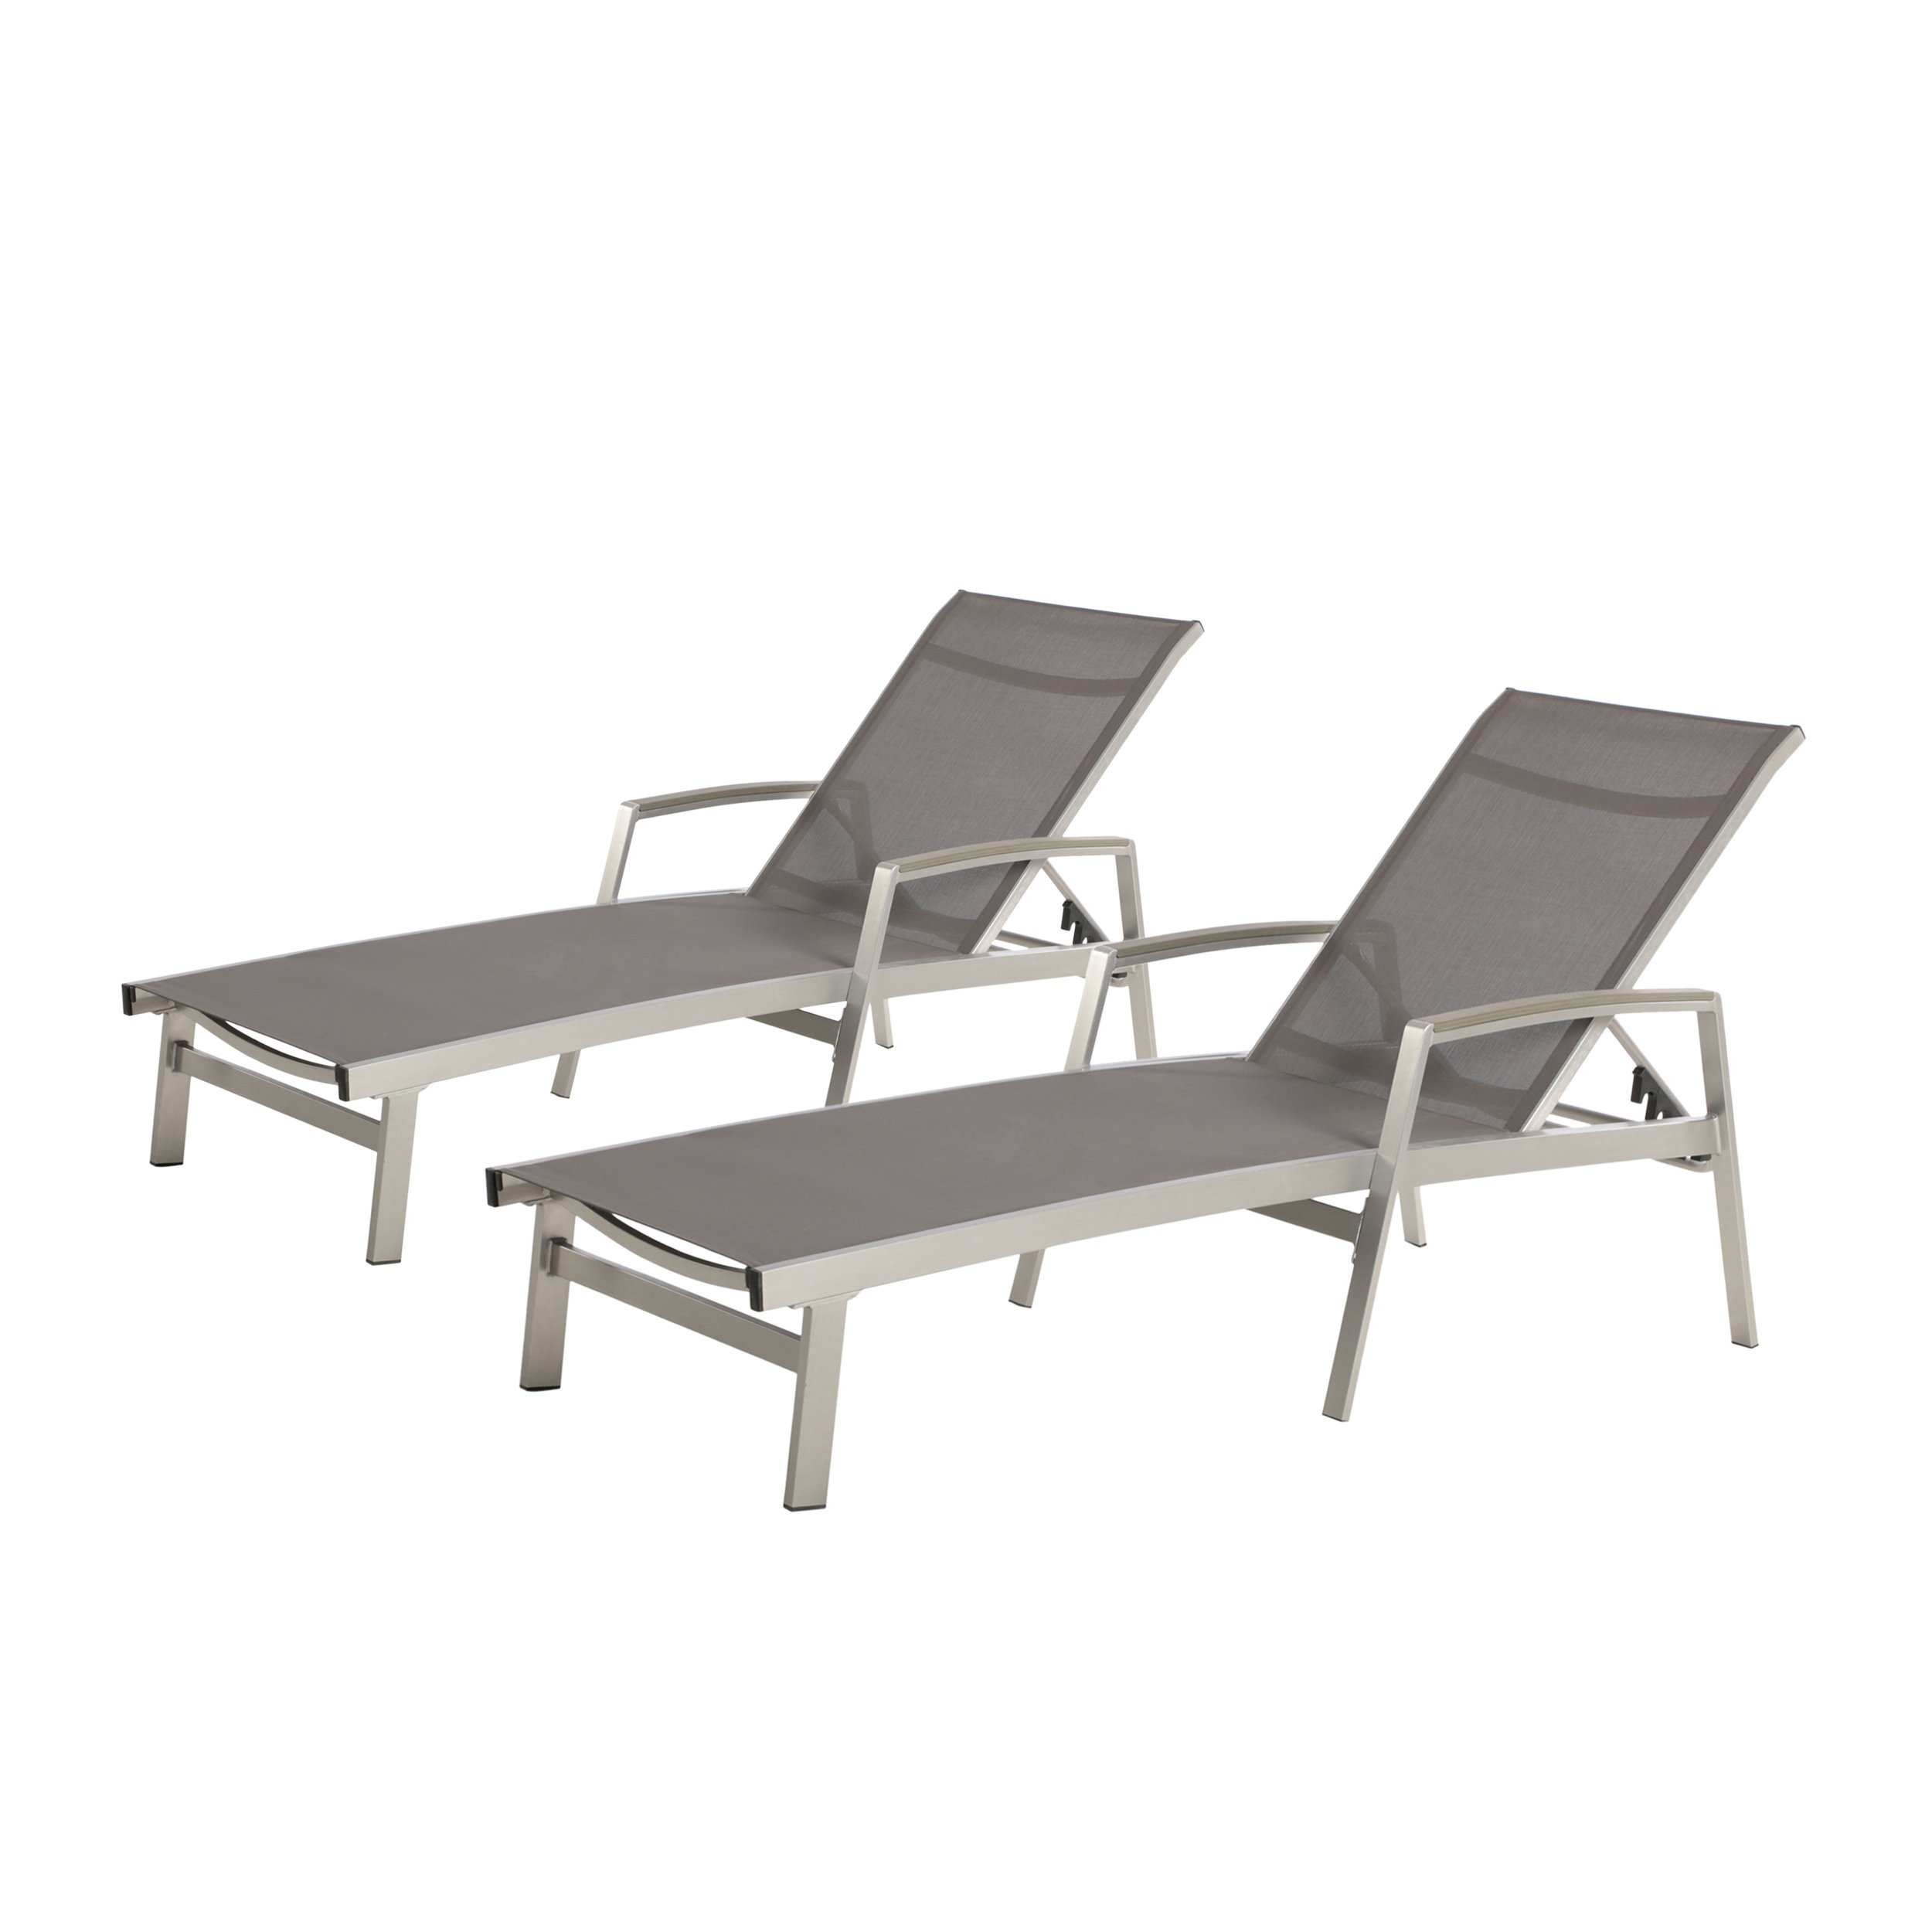 Joy Outdoor Mesh and Aluminum Chaise Lounge (Set of 2), Gray